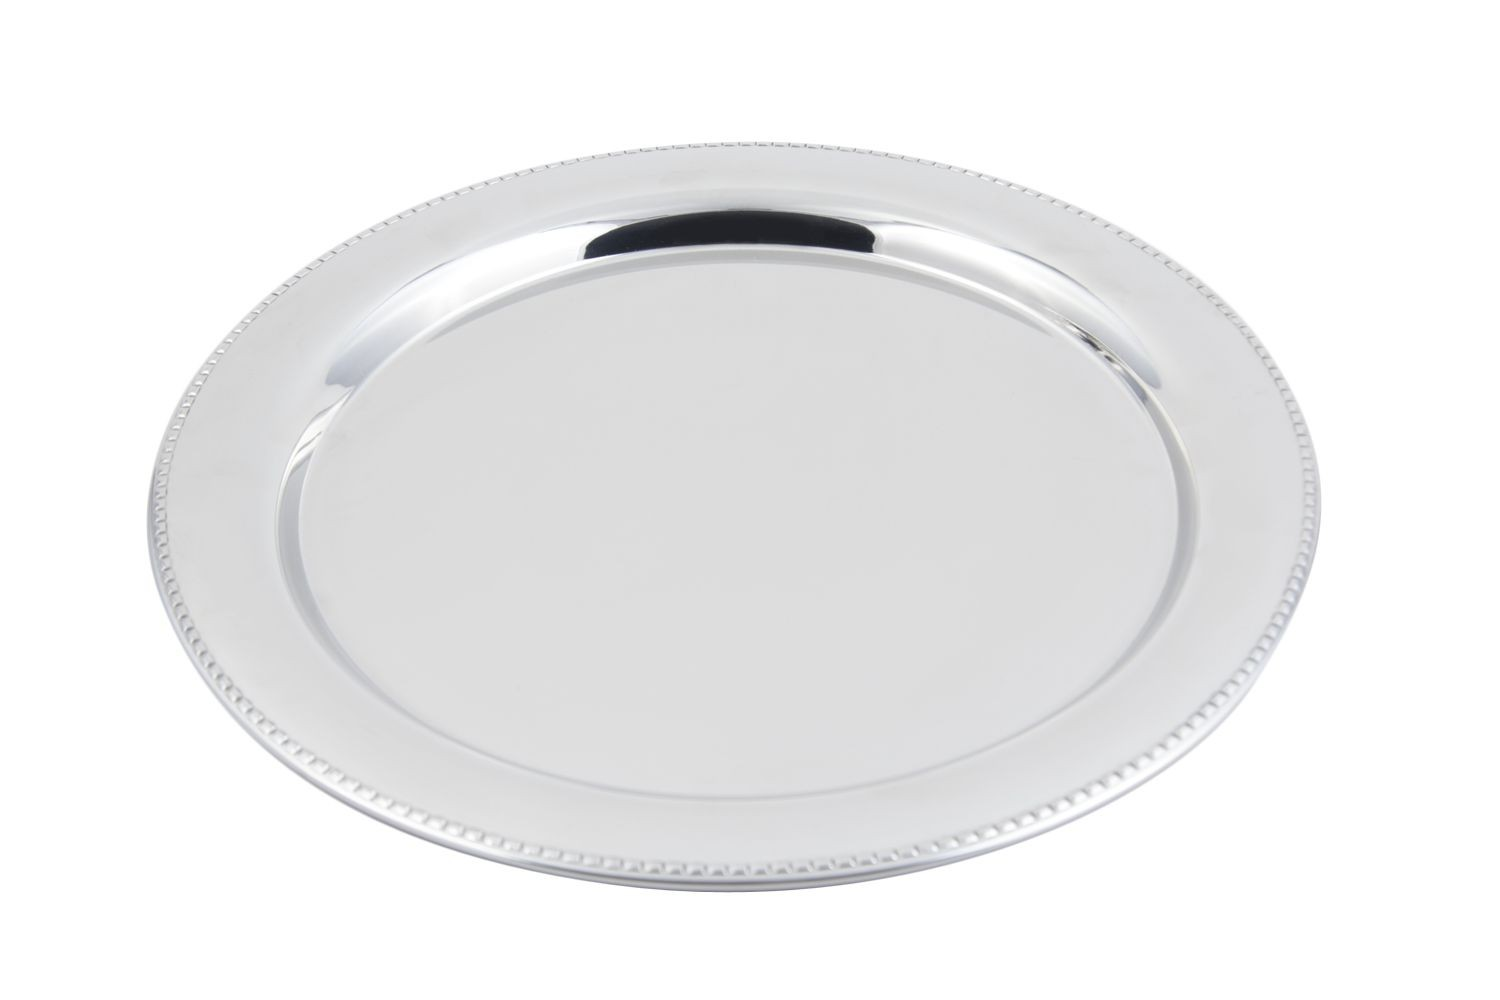 "Bon Chef 61331 Stainless Steel Round Tray with Bead Border, 15"" Dia."